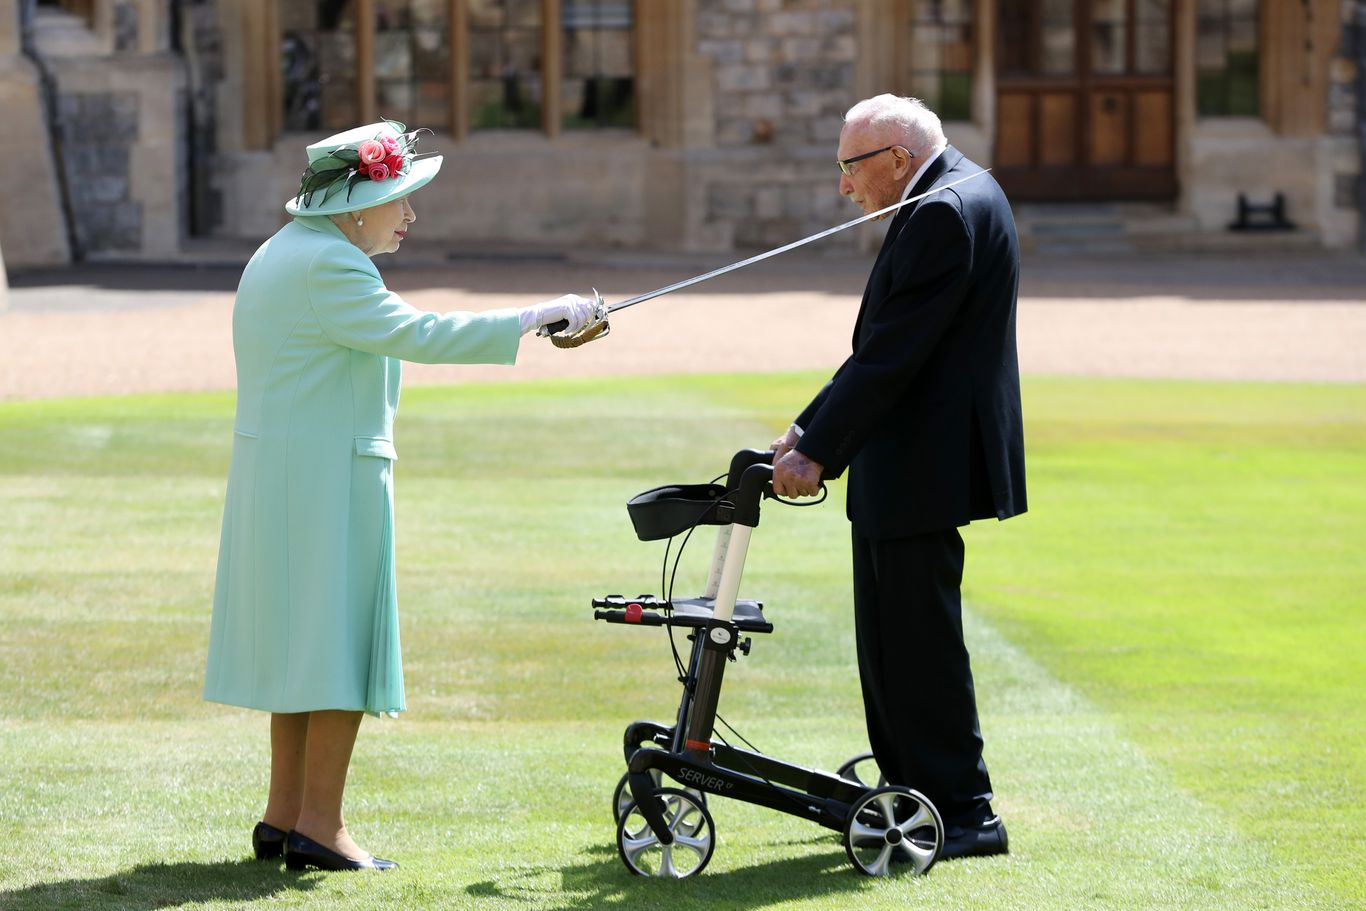 Queen knights 100-year-old who raised more than $40 million for U.K.'s National Health Service thumbnail